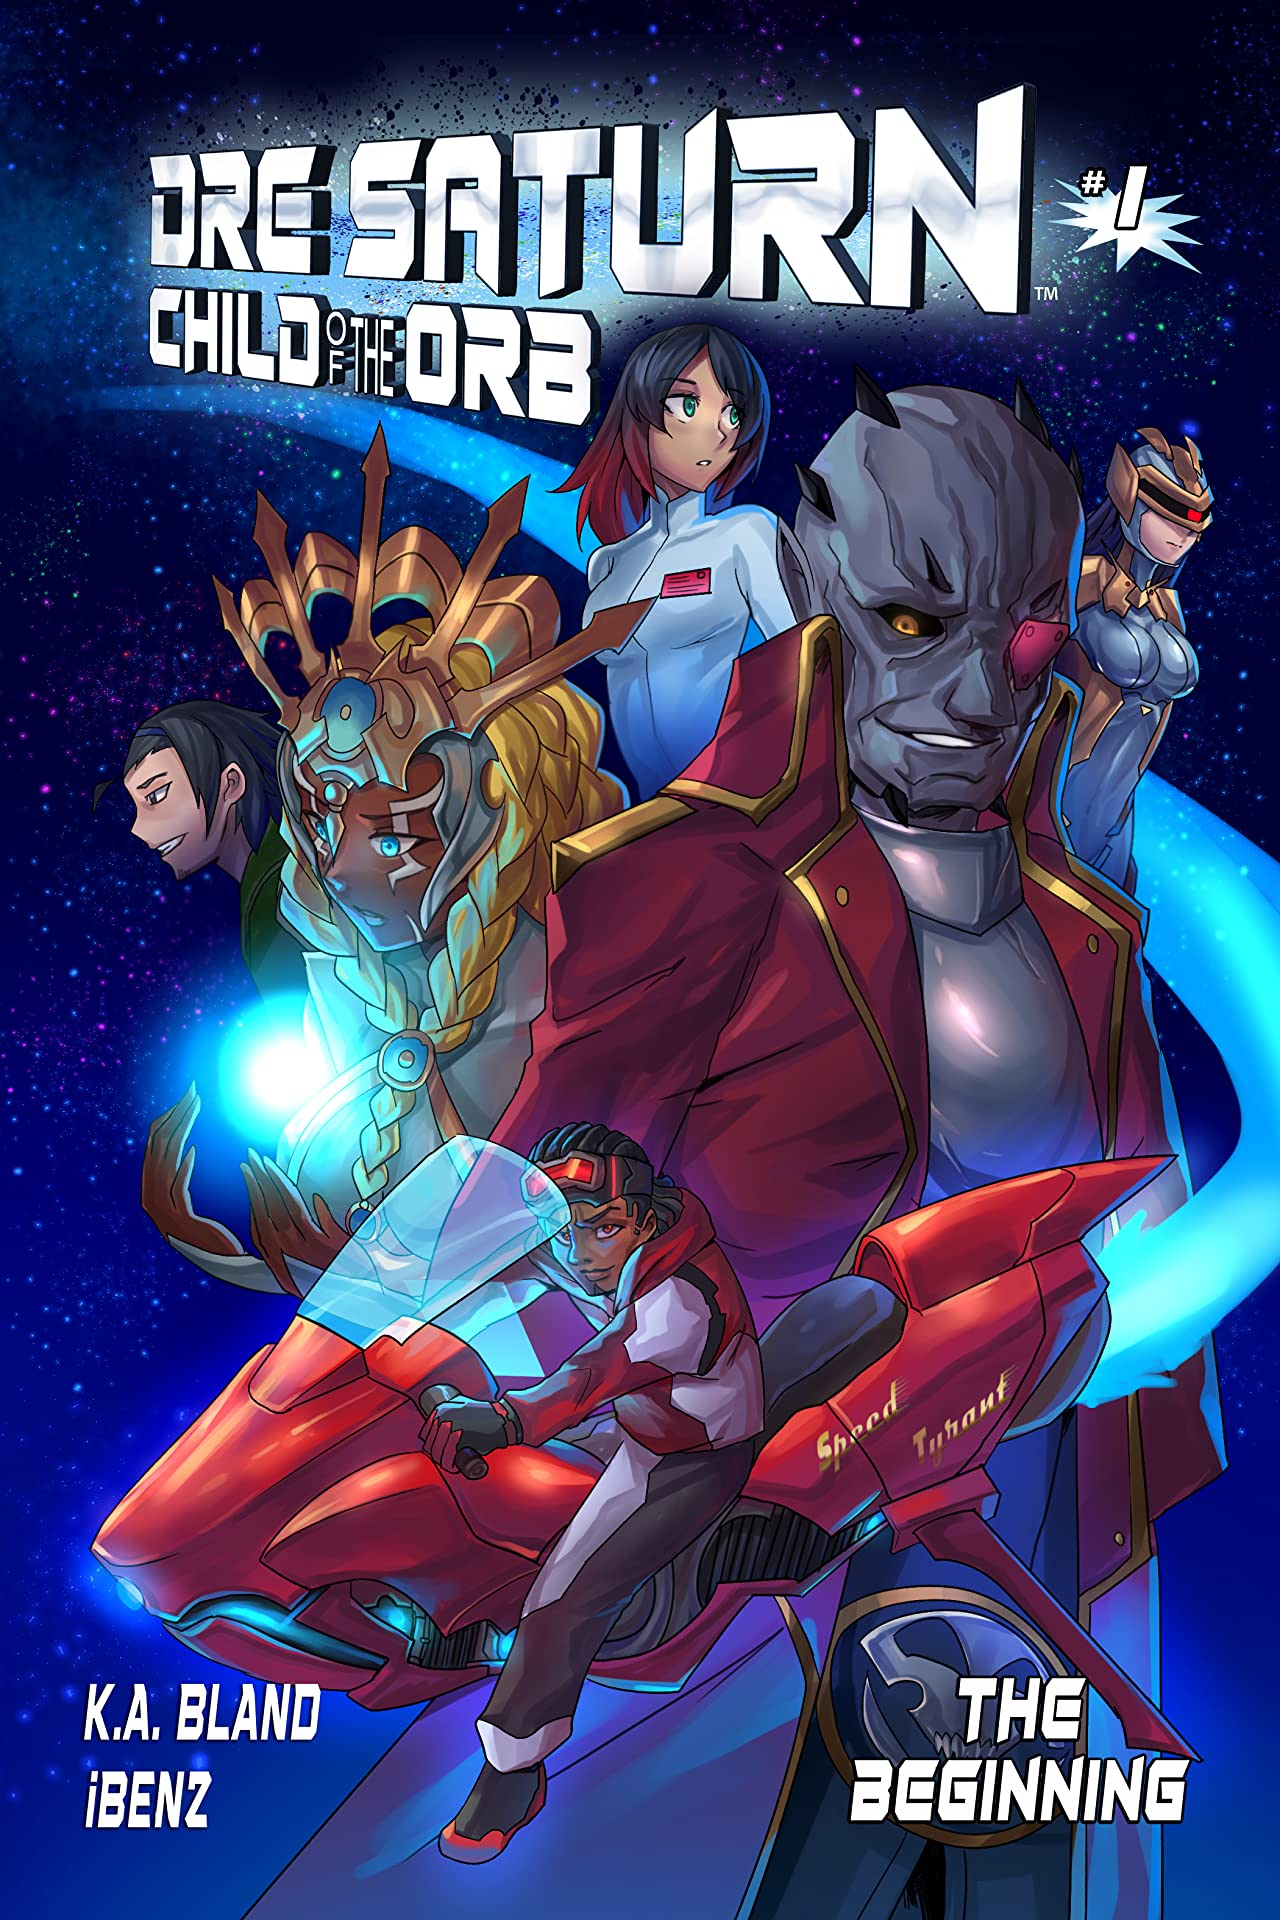 Dre Saturn: Child of The Orb #1